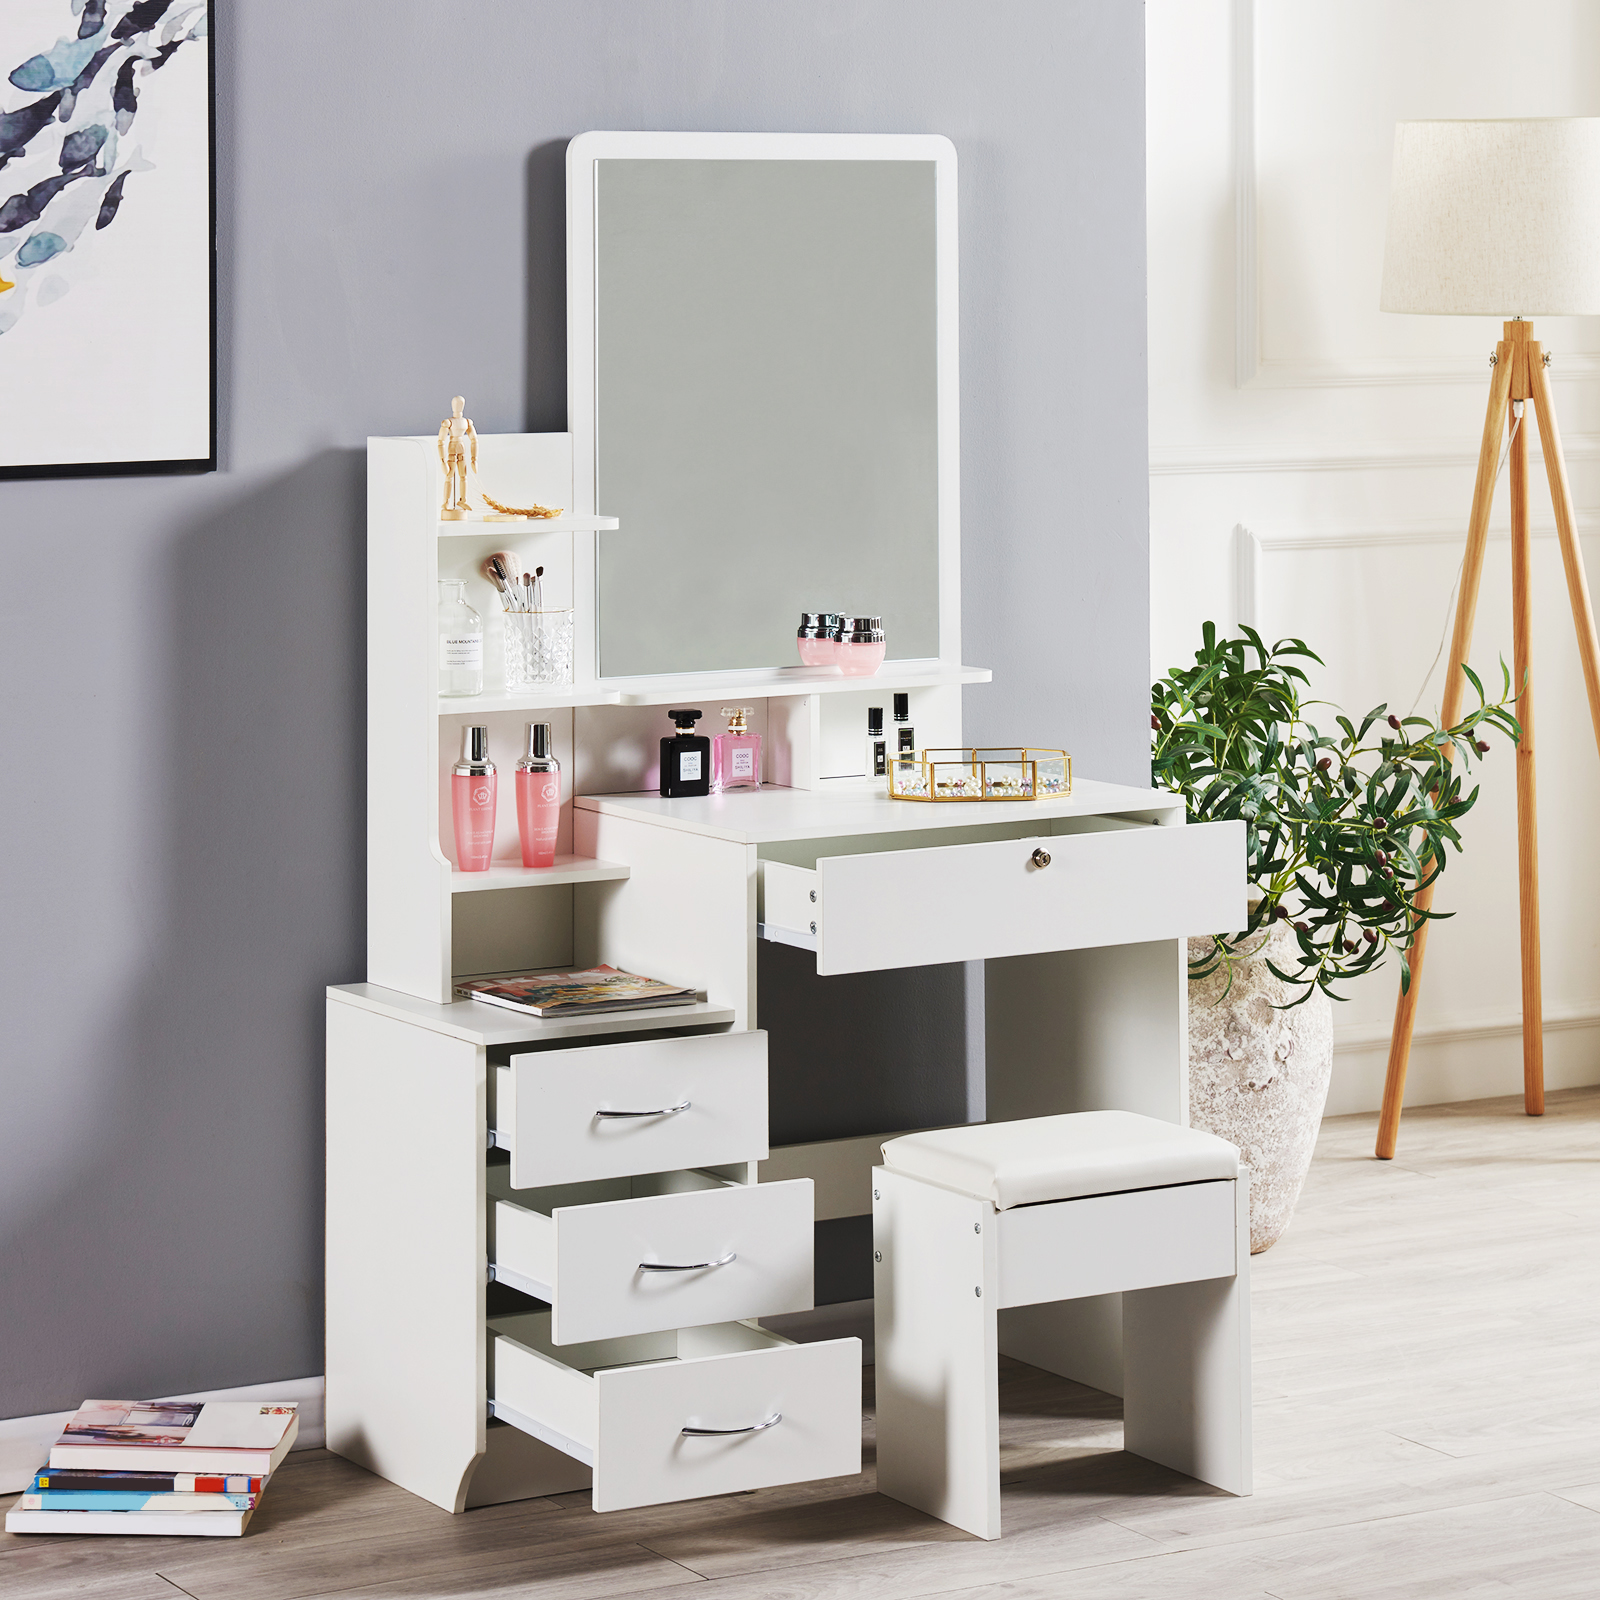 Details about Modern Dressing Table Stool Bedroom Vanity Set Makeup Desk W/  Mirror & 10 Drawers